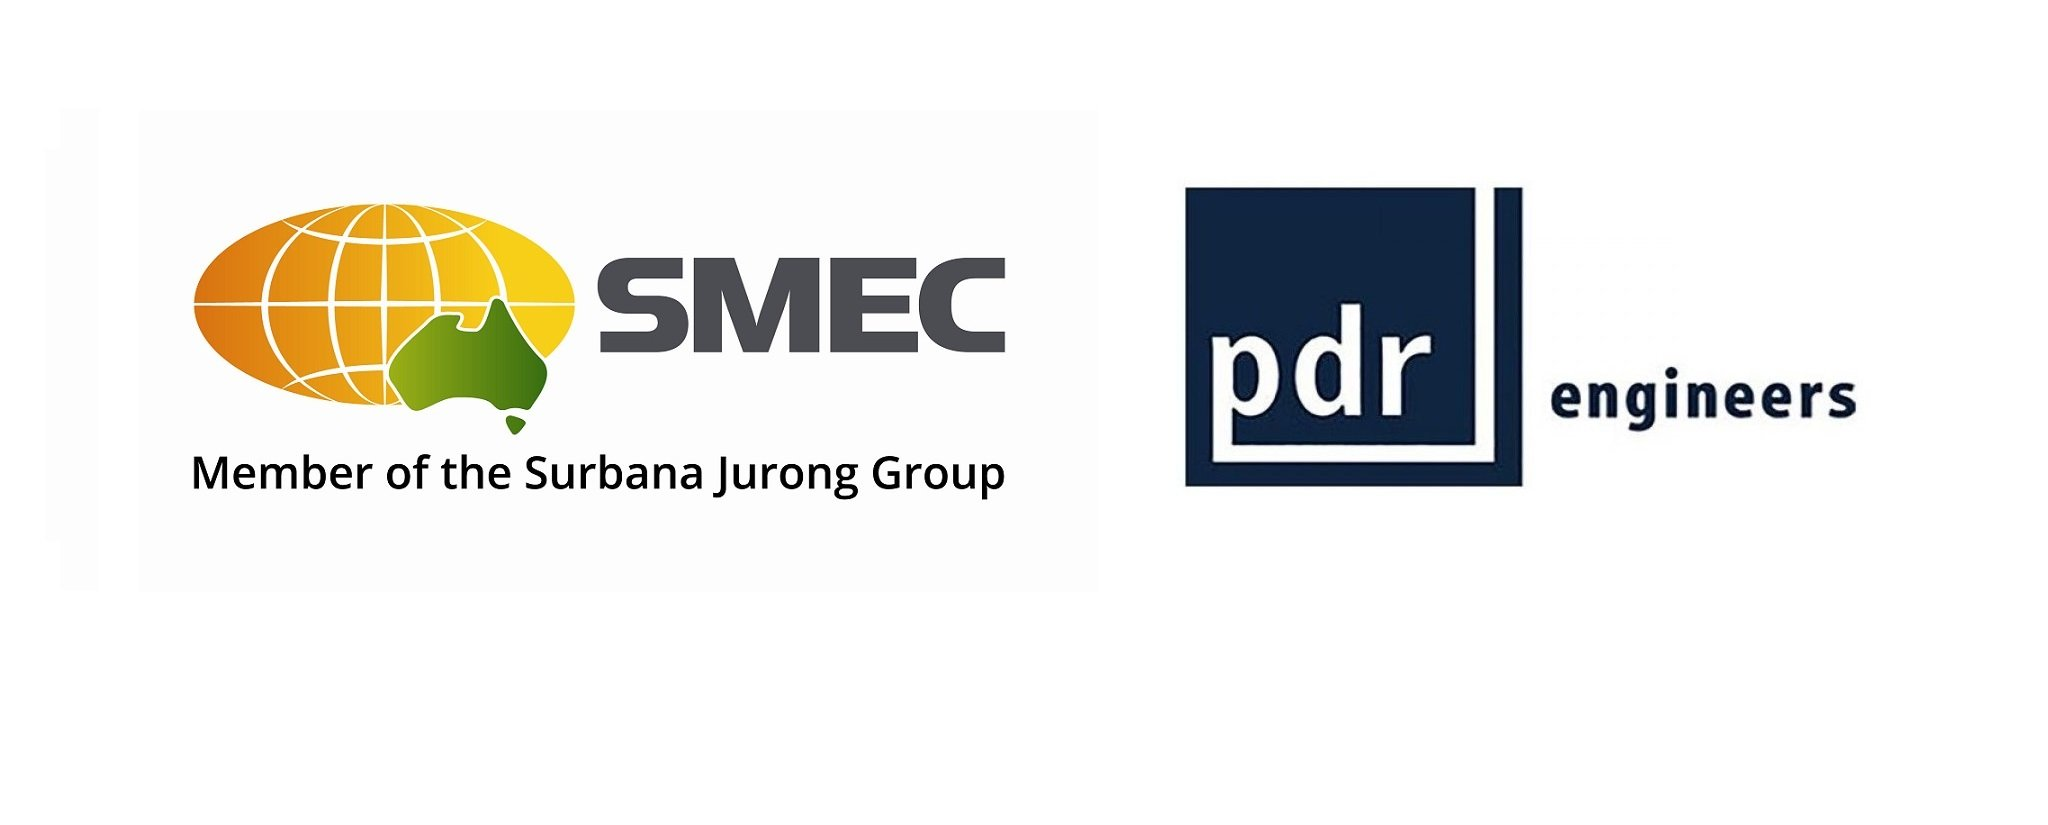 Congratulations to SMEC <br>and a warm welcome to PDR!